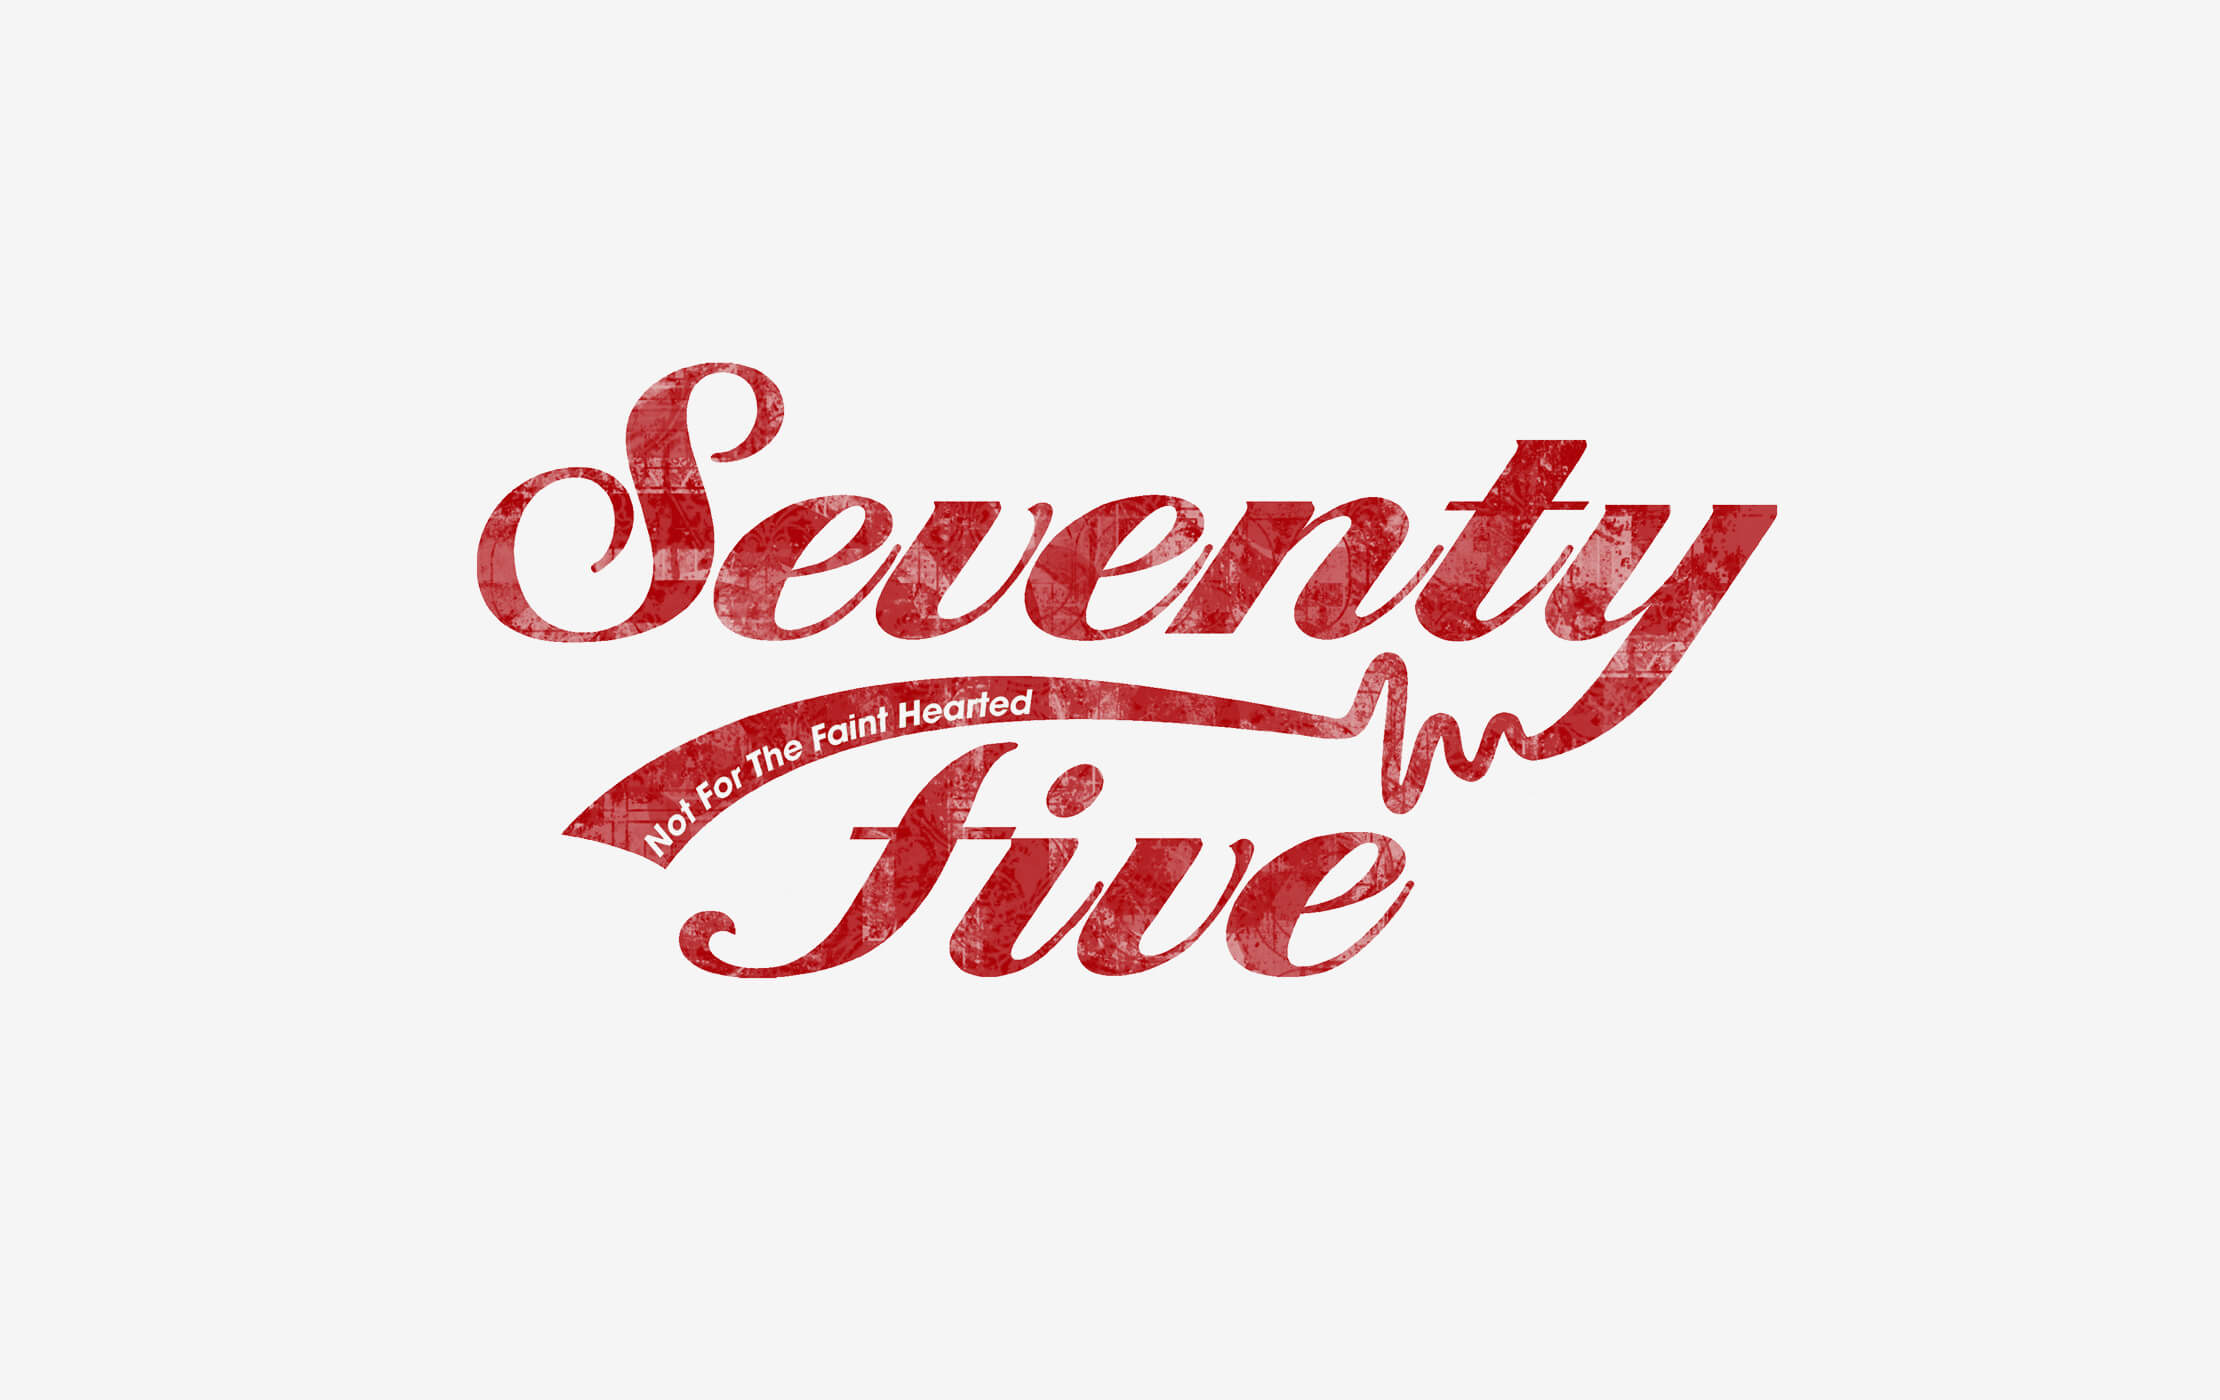 Dark red 'Seventy Five' logo on a light grey background, written in a rustic heavy script font with the tagline 'Not for the Faint Hearted' in white